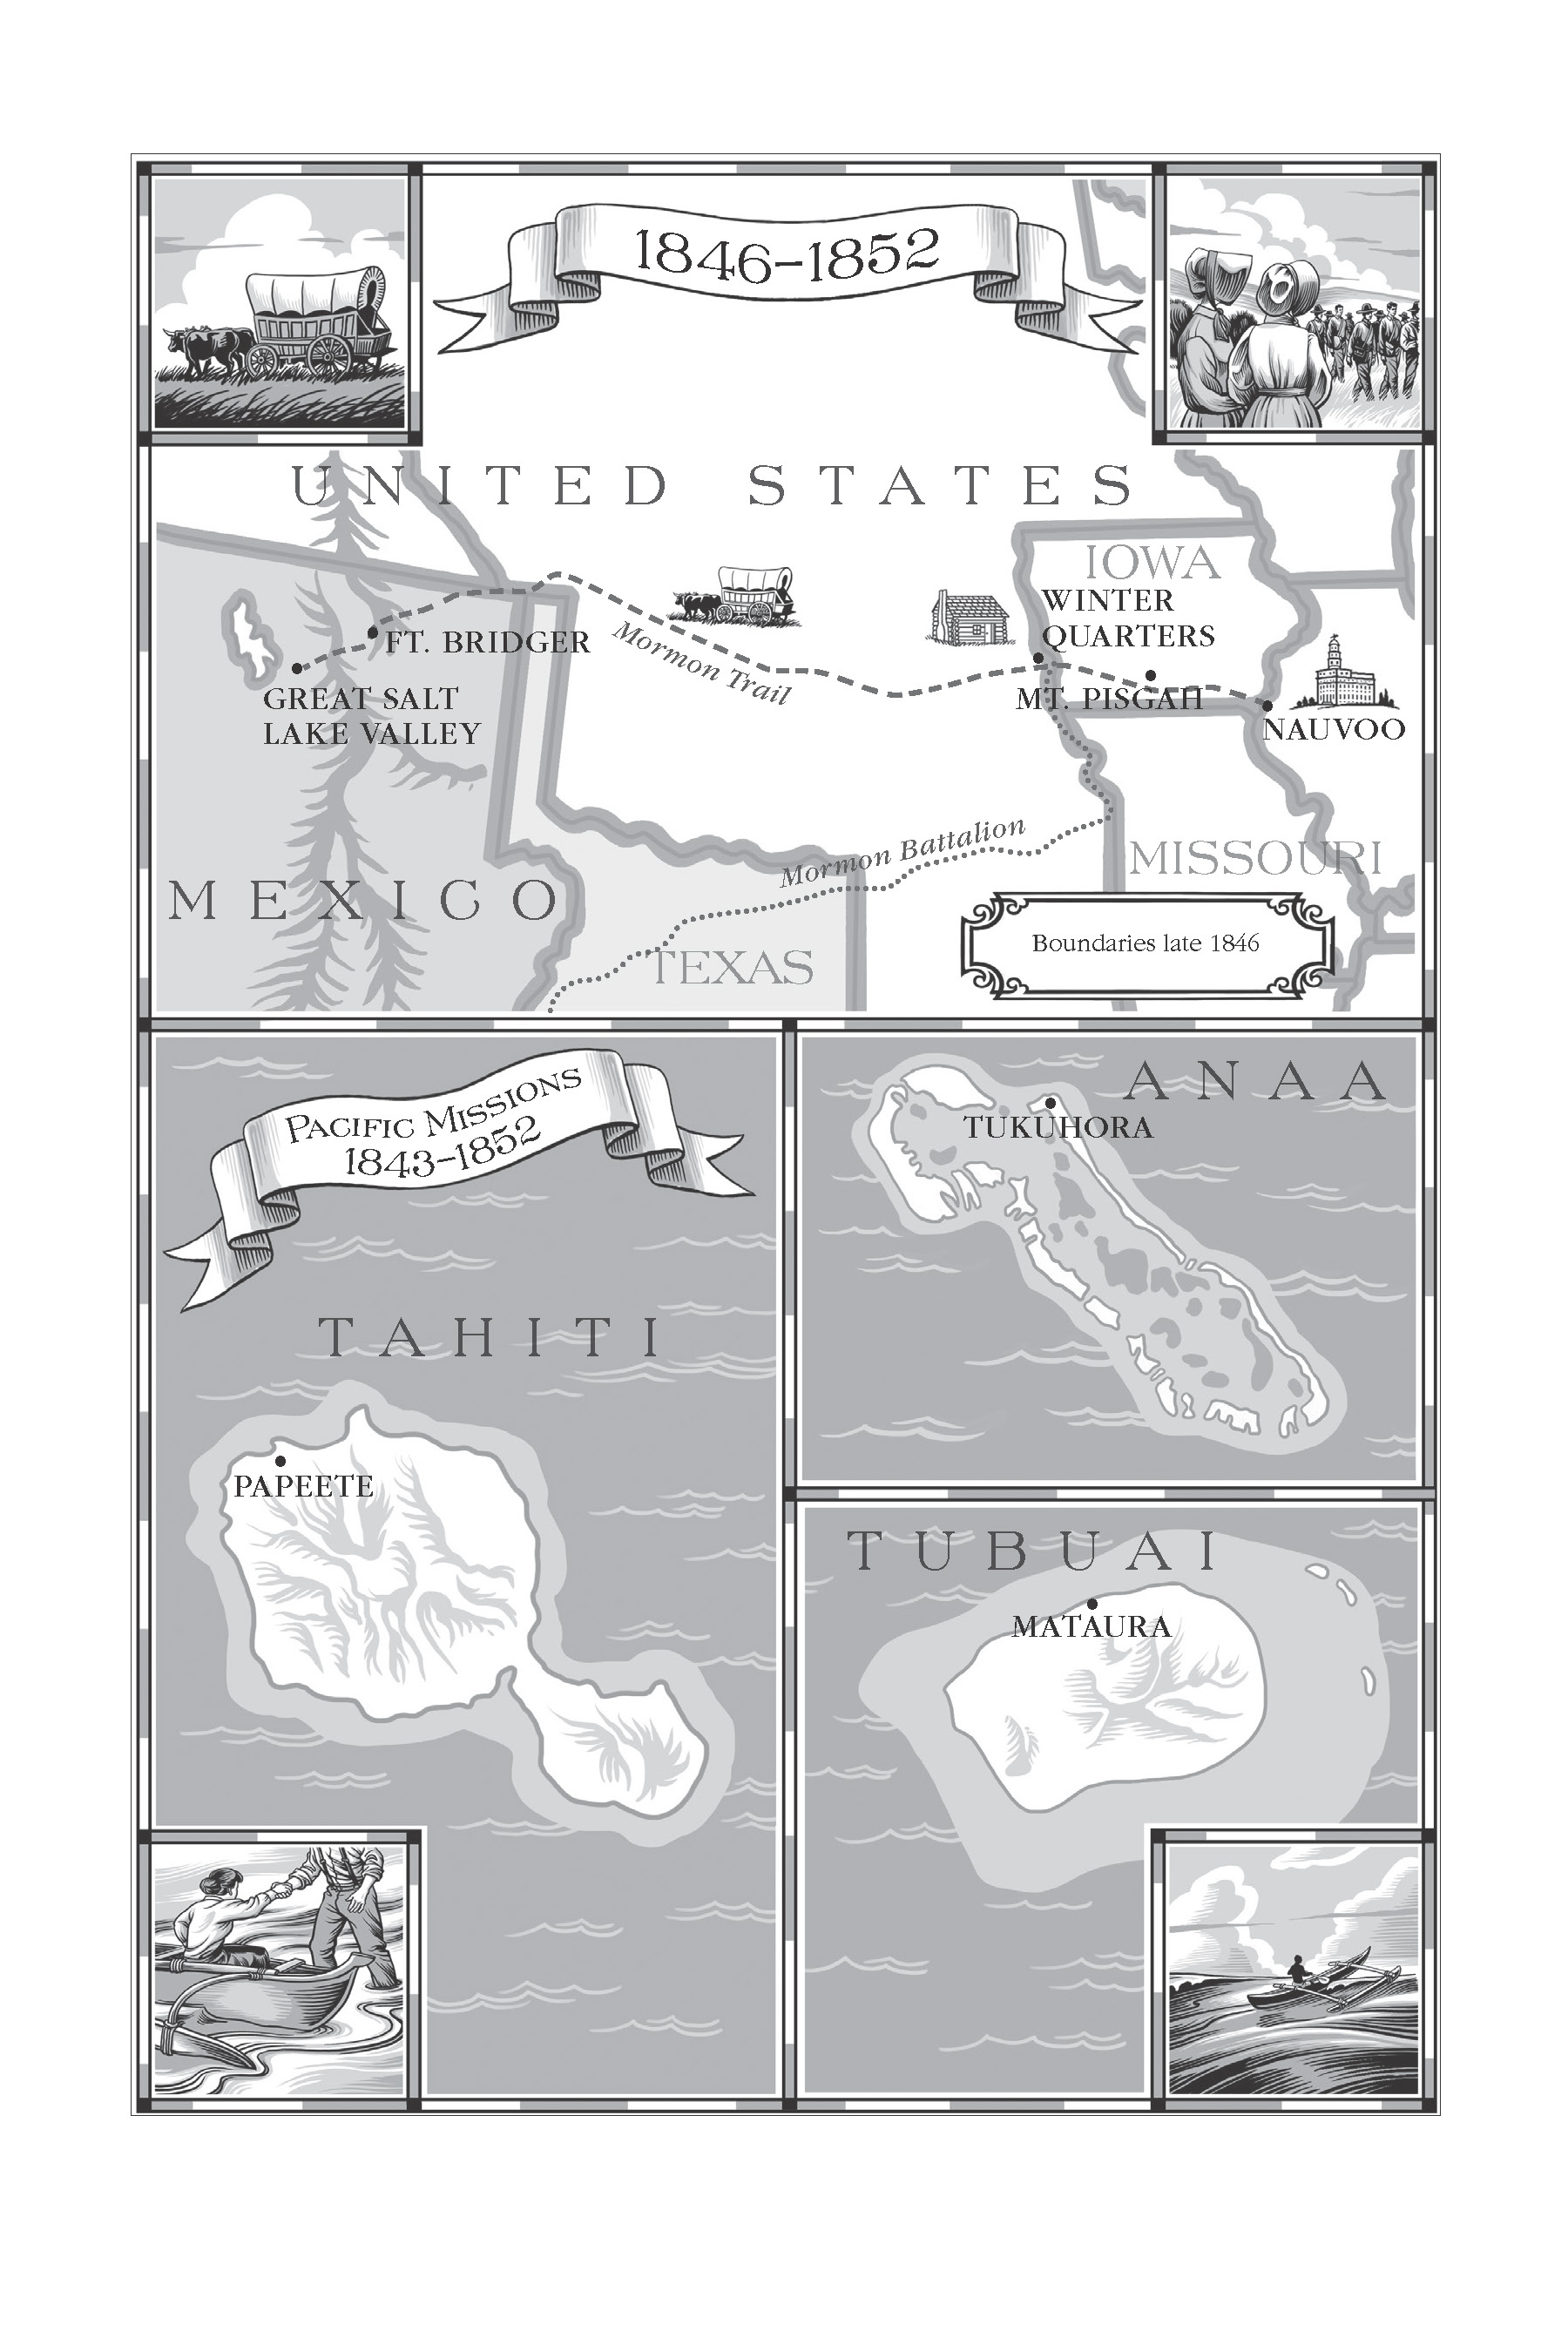 Maps of the South Pacific islands that early missionaries went to.